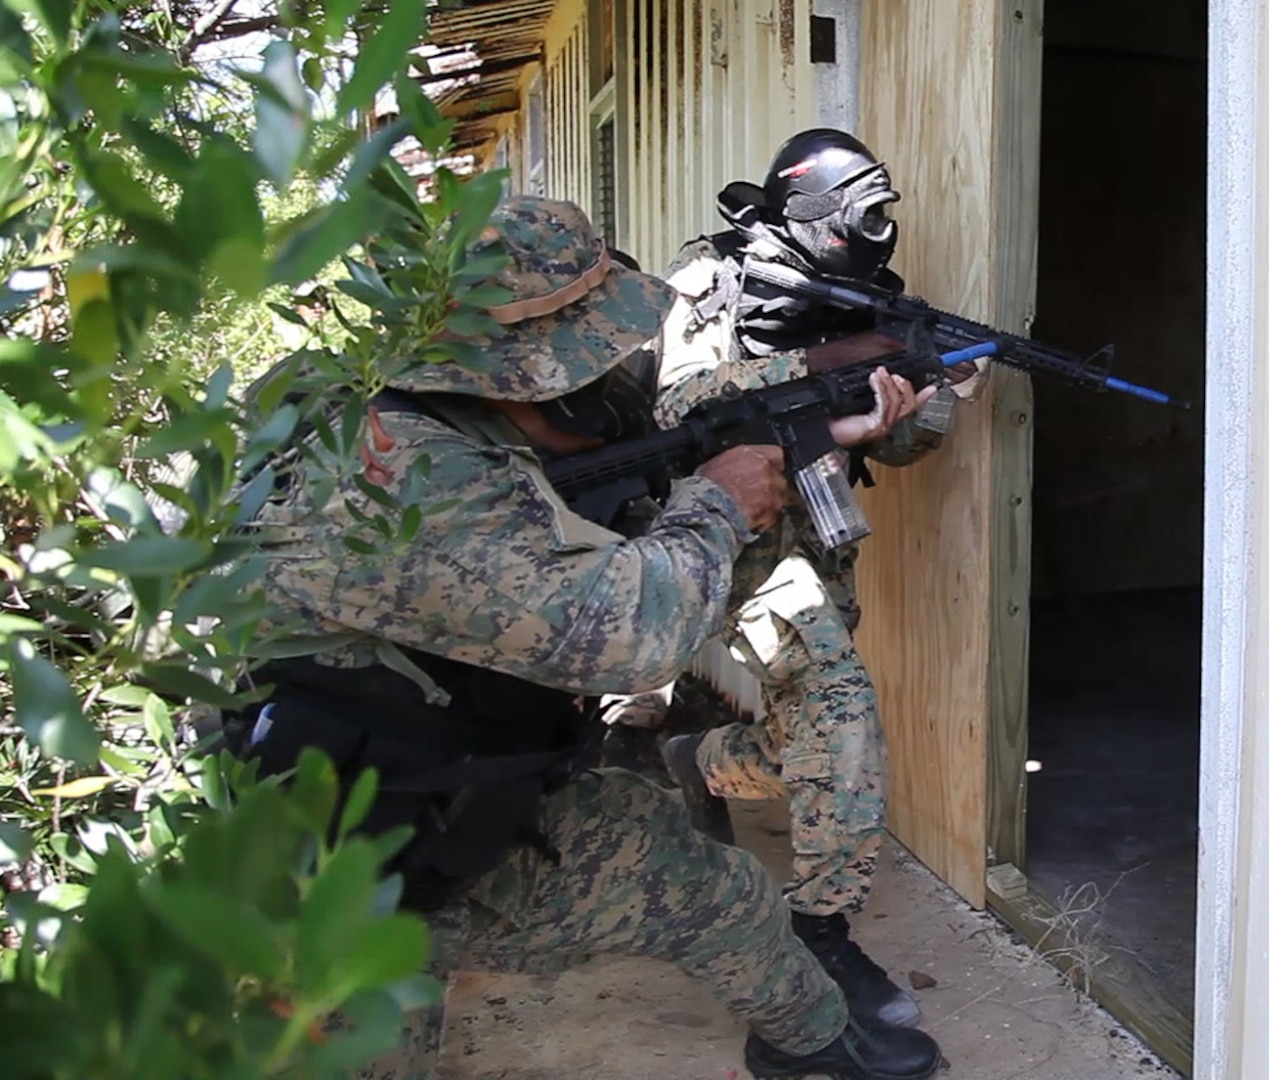 Royal Bahama Defence Force Commandos breach a room as part of a simulated interdiction exercise during Marlin Shield on Pike Cay, Bahamas May 10, 2016. Marlin Shield promotes interoperability between the RBDF, U.S. Northern Command, and U.S. Special Operations Command North and allows both nations to combat terrorism and illicit trafficking in the Caribbean region.